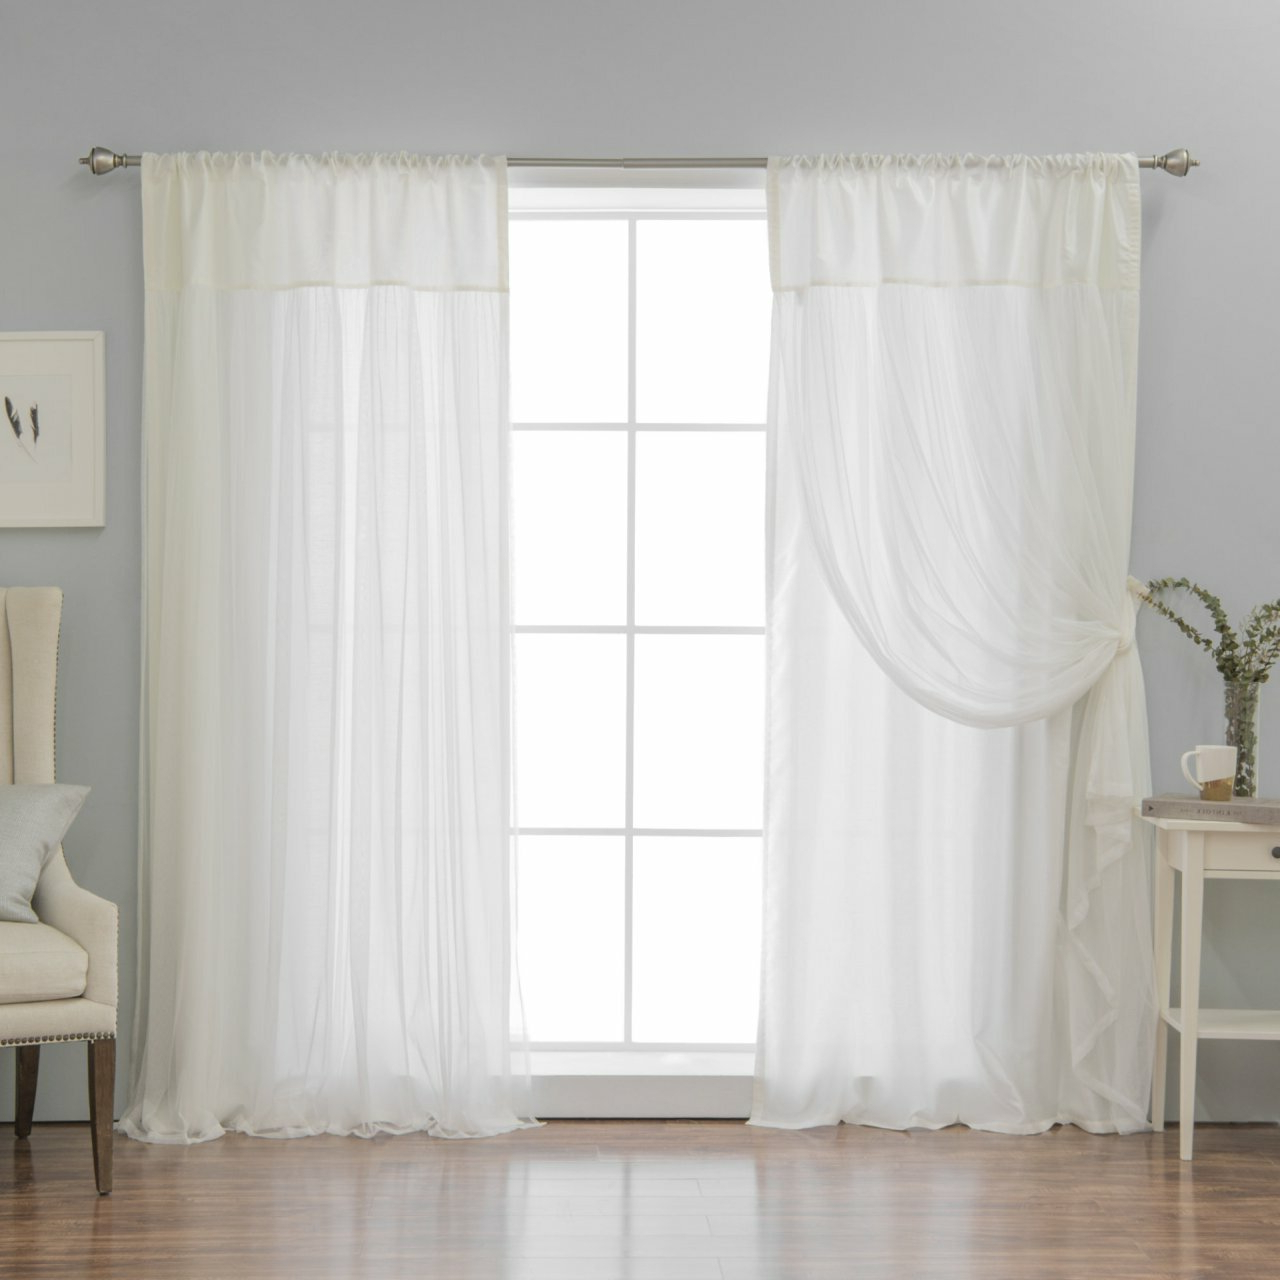 Thermal Sheer Curtains – Overthedoororganizer (View 19 of 20)